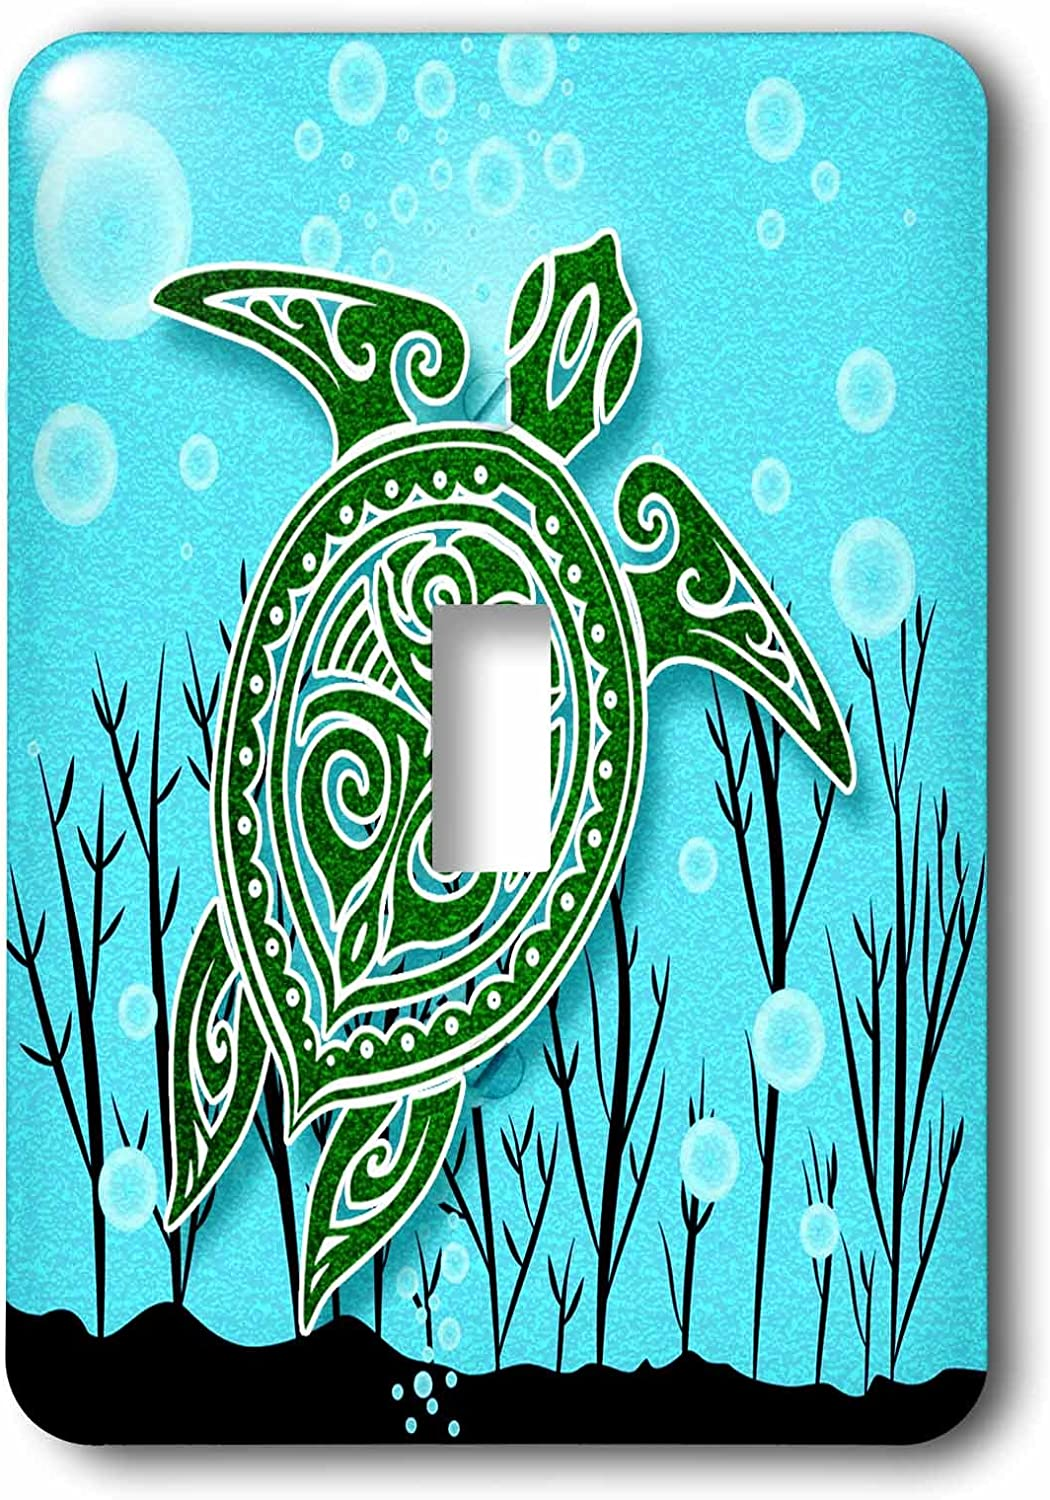 3drose Lsp 240142 1 Tropical Green Sea Turtle With Underwater Plants And Bubbles Single Toggle Switch Amazon Com